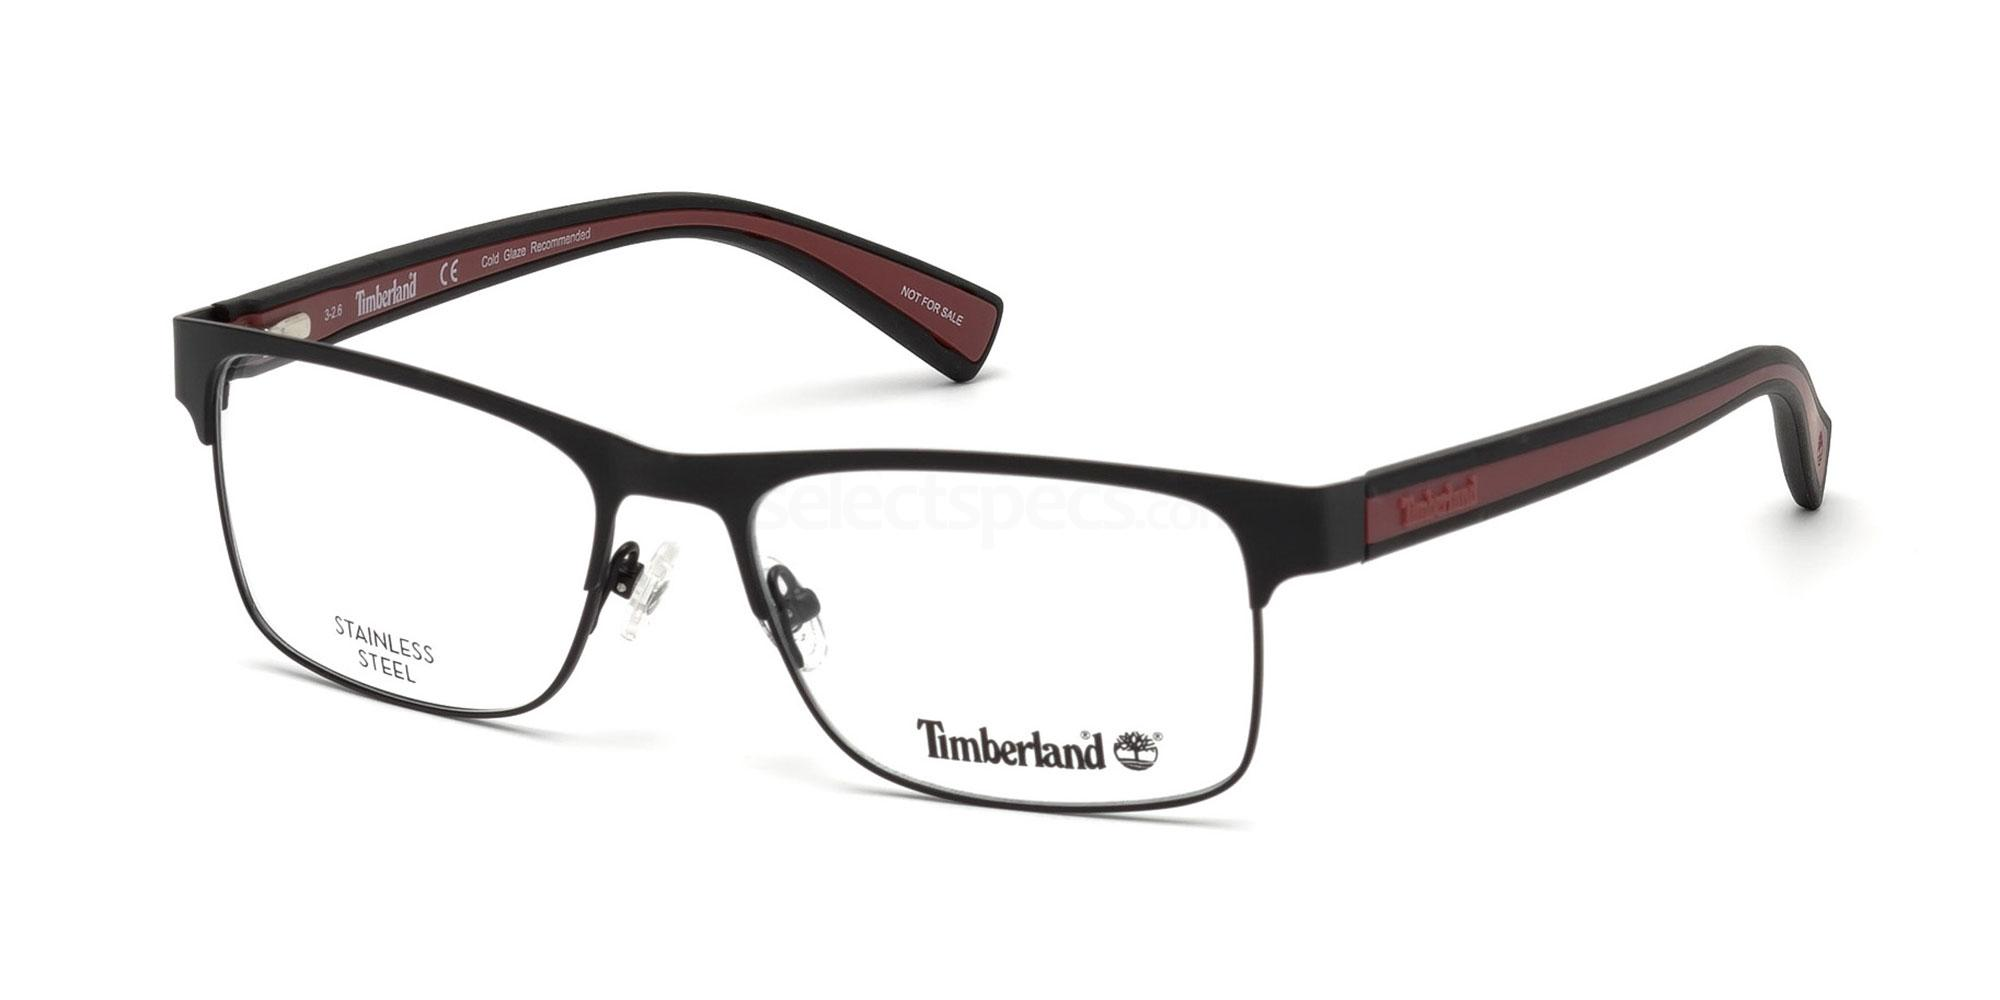 002 TB1573 Glasses, Timberland